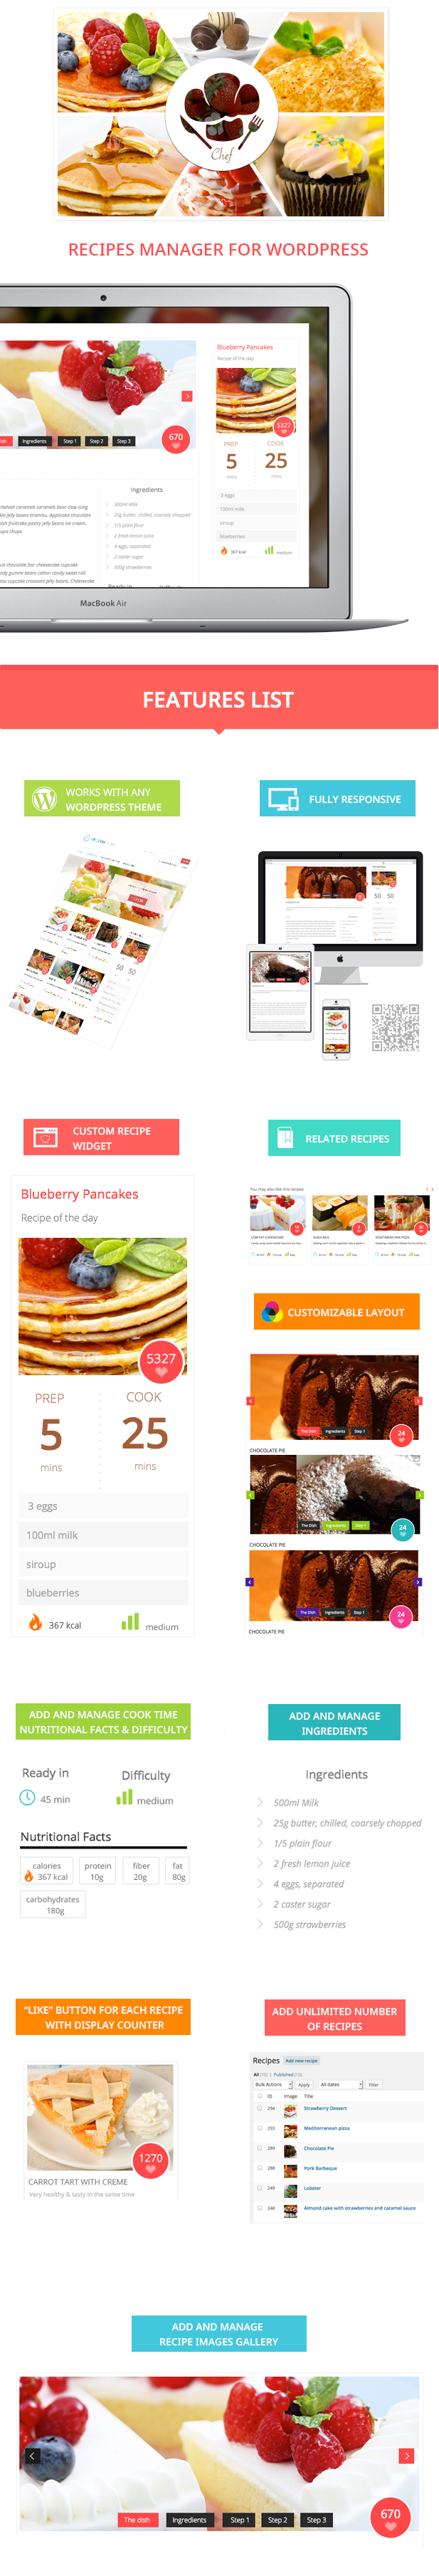 Le Chef - Premium Recipe Plugin Download